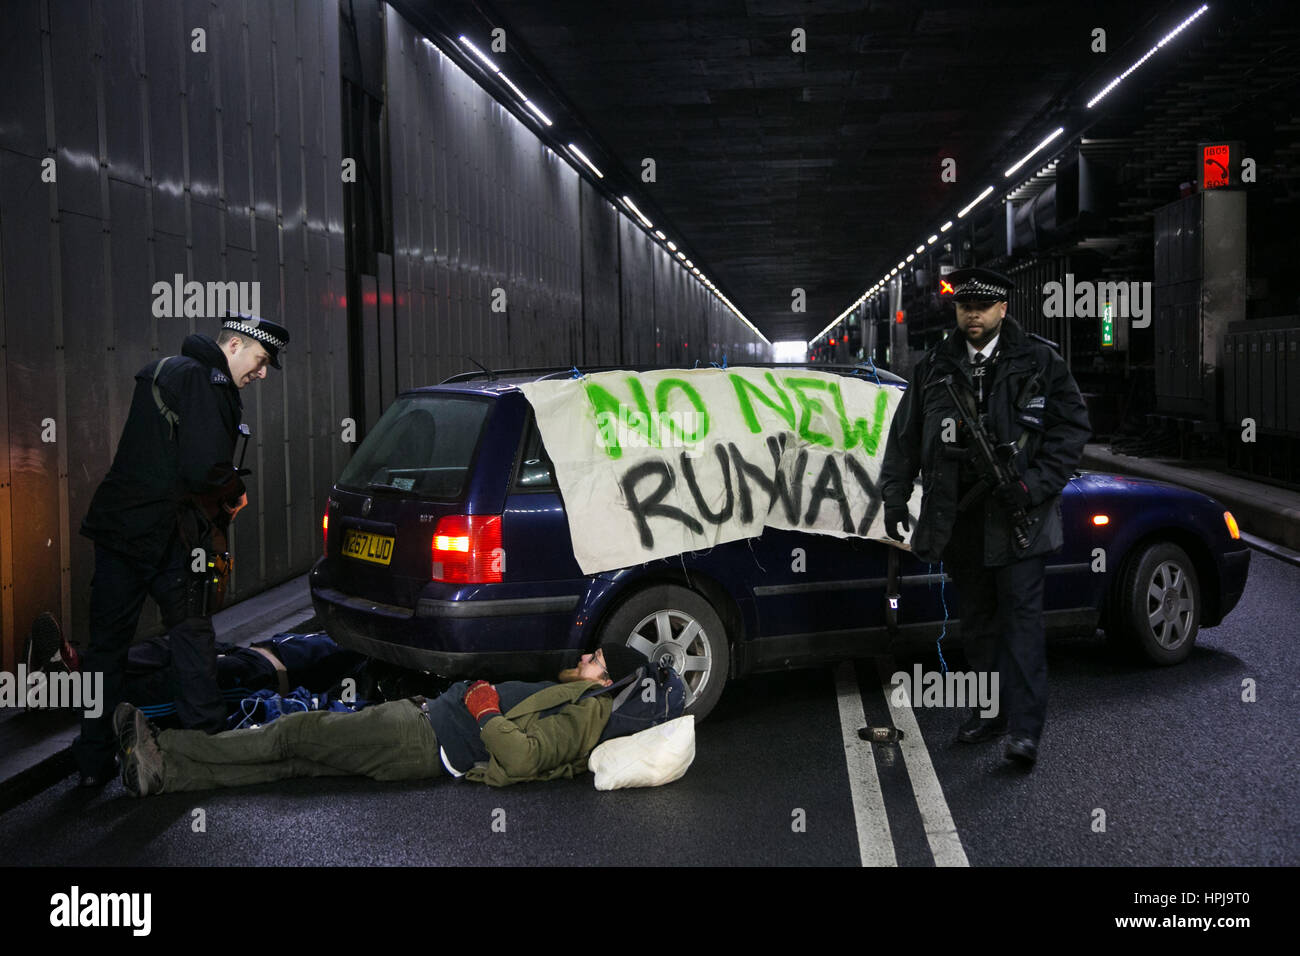 Police attending three climate activists who have blocked the inbound tunnel to Heathrow Airport in protest againts - Stock Image